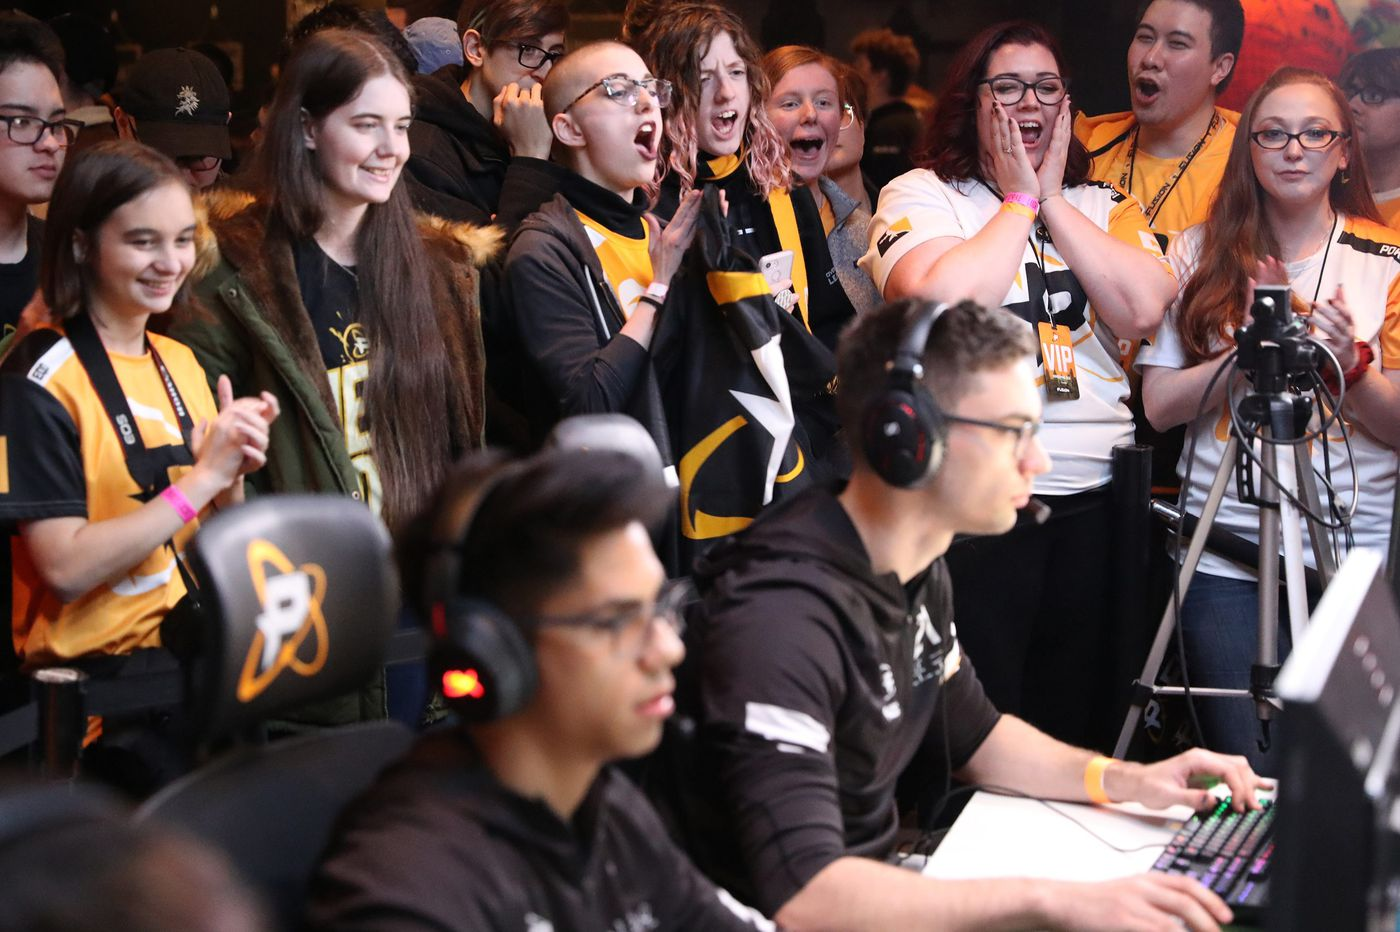 Philadelphia Fusion makes its Philly Overwatch debut in Center City